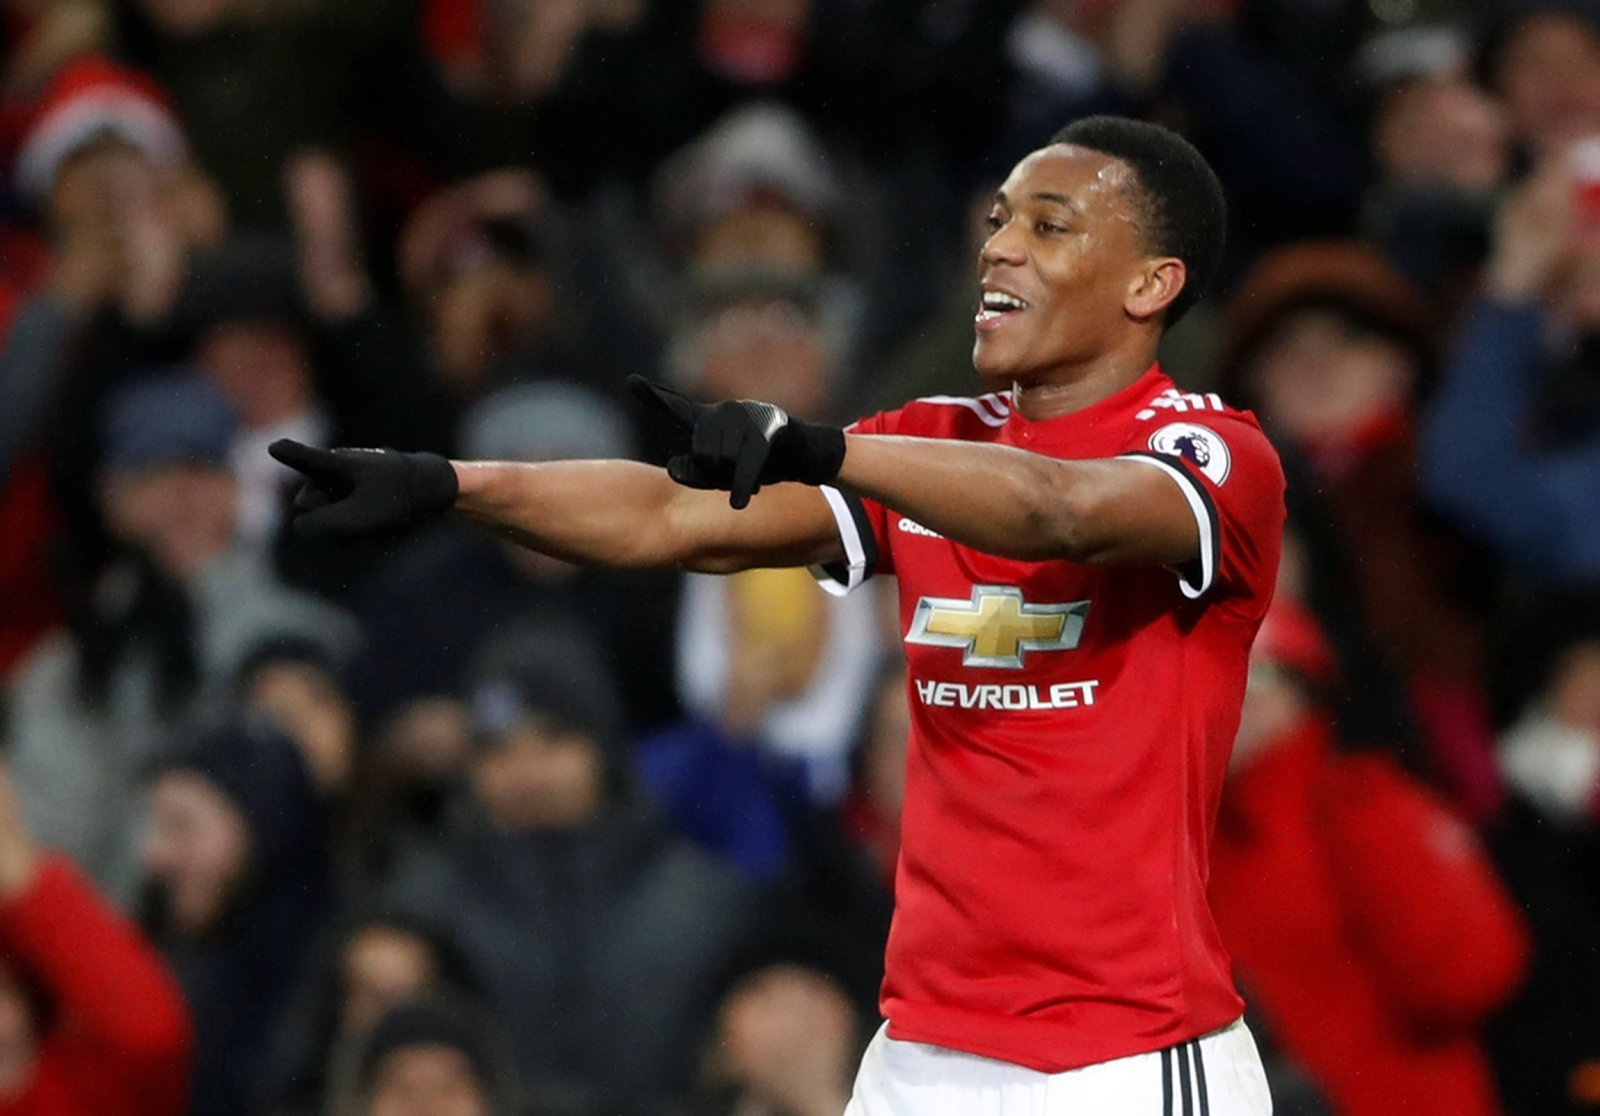 Manchester United: Fans react to Anthony Martial's debut